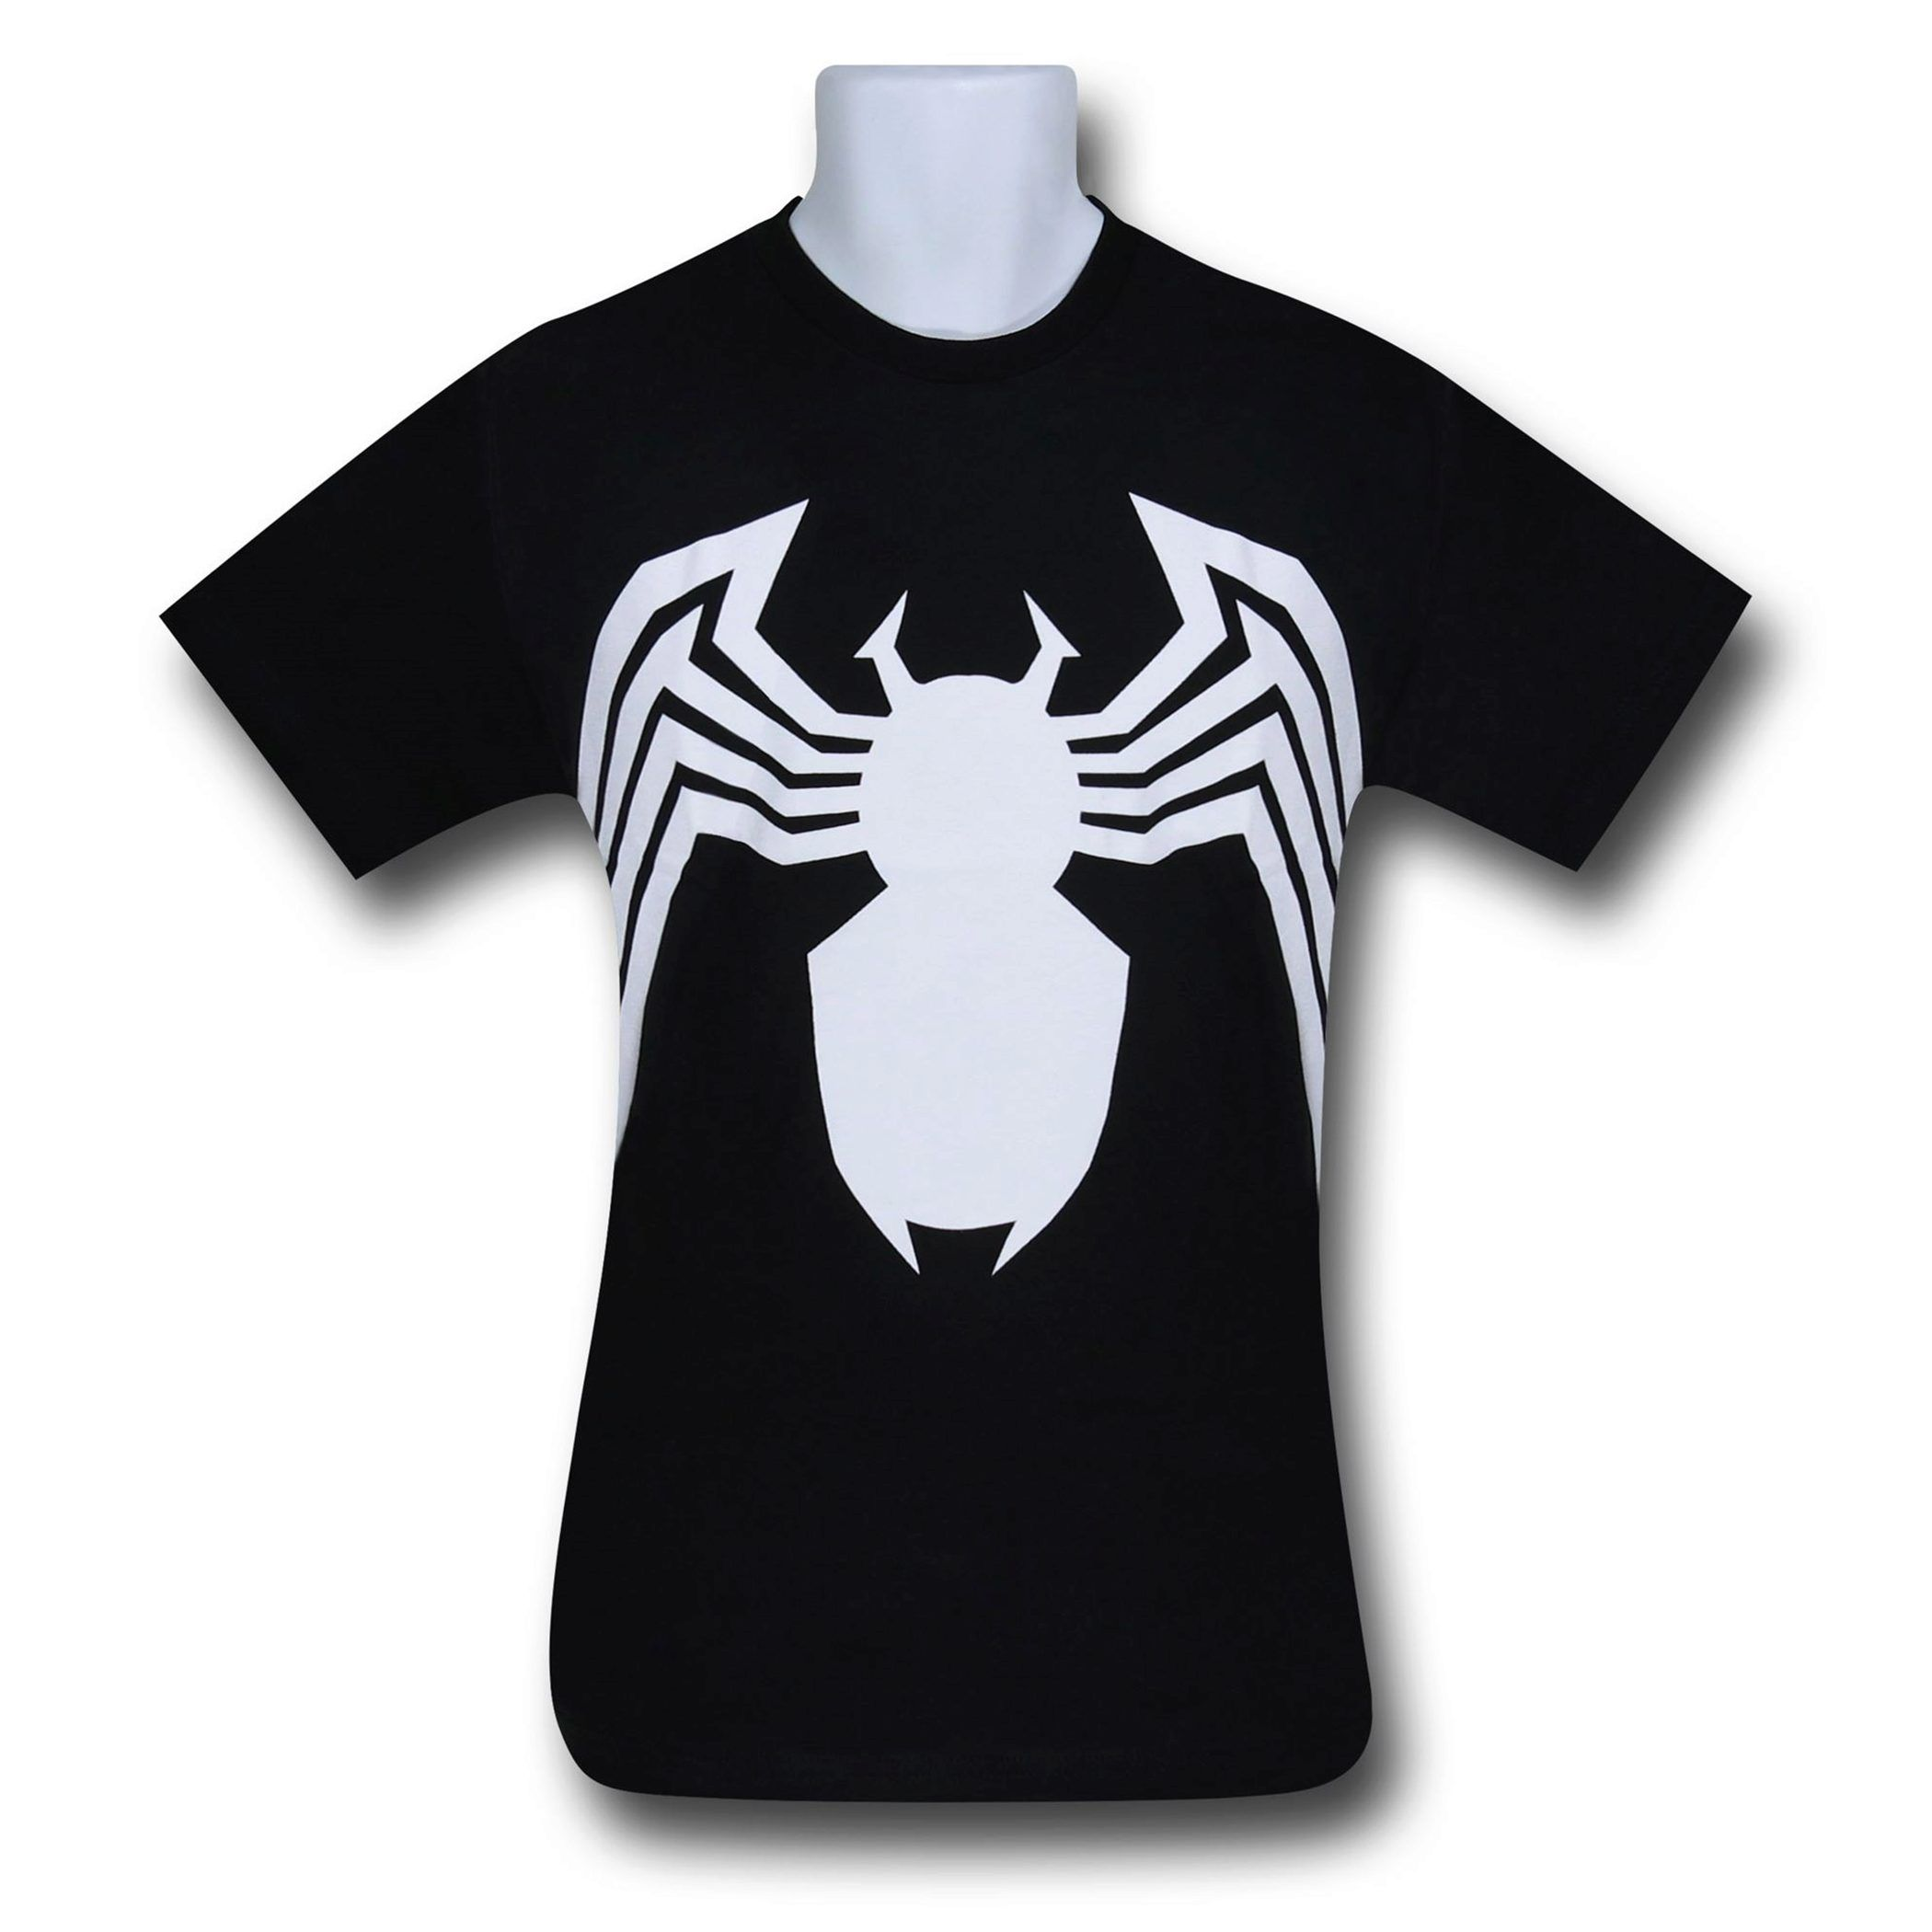 Spider Man Venom Short Sleeve T Shirt Venom Venom Symbol And